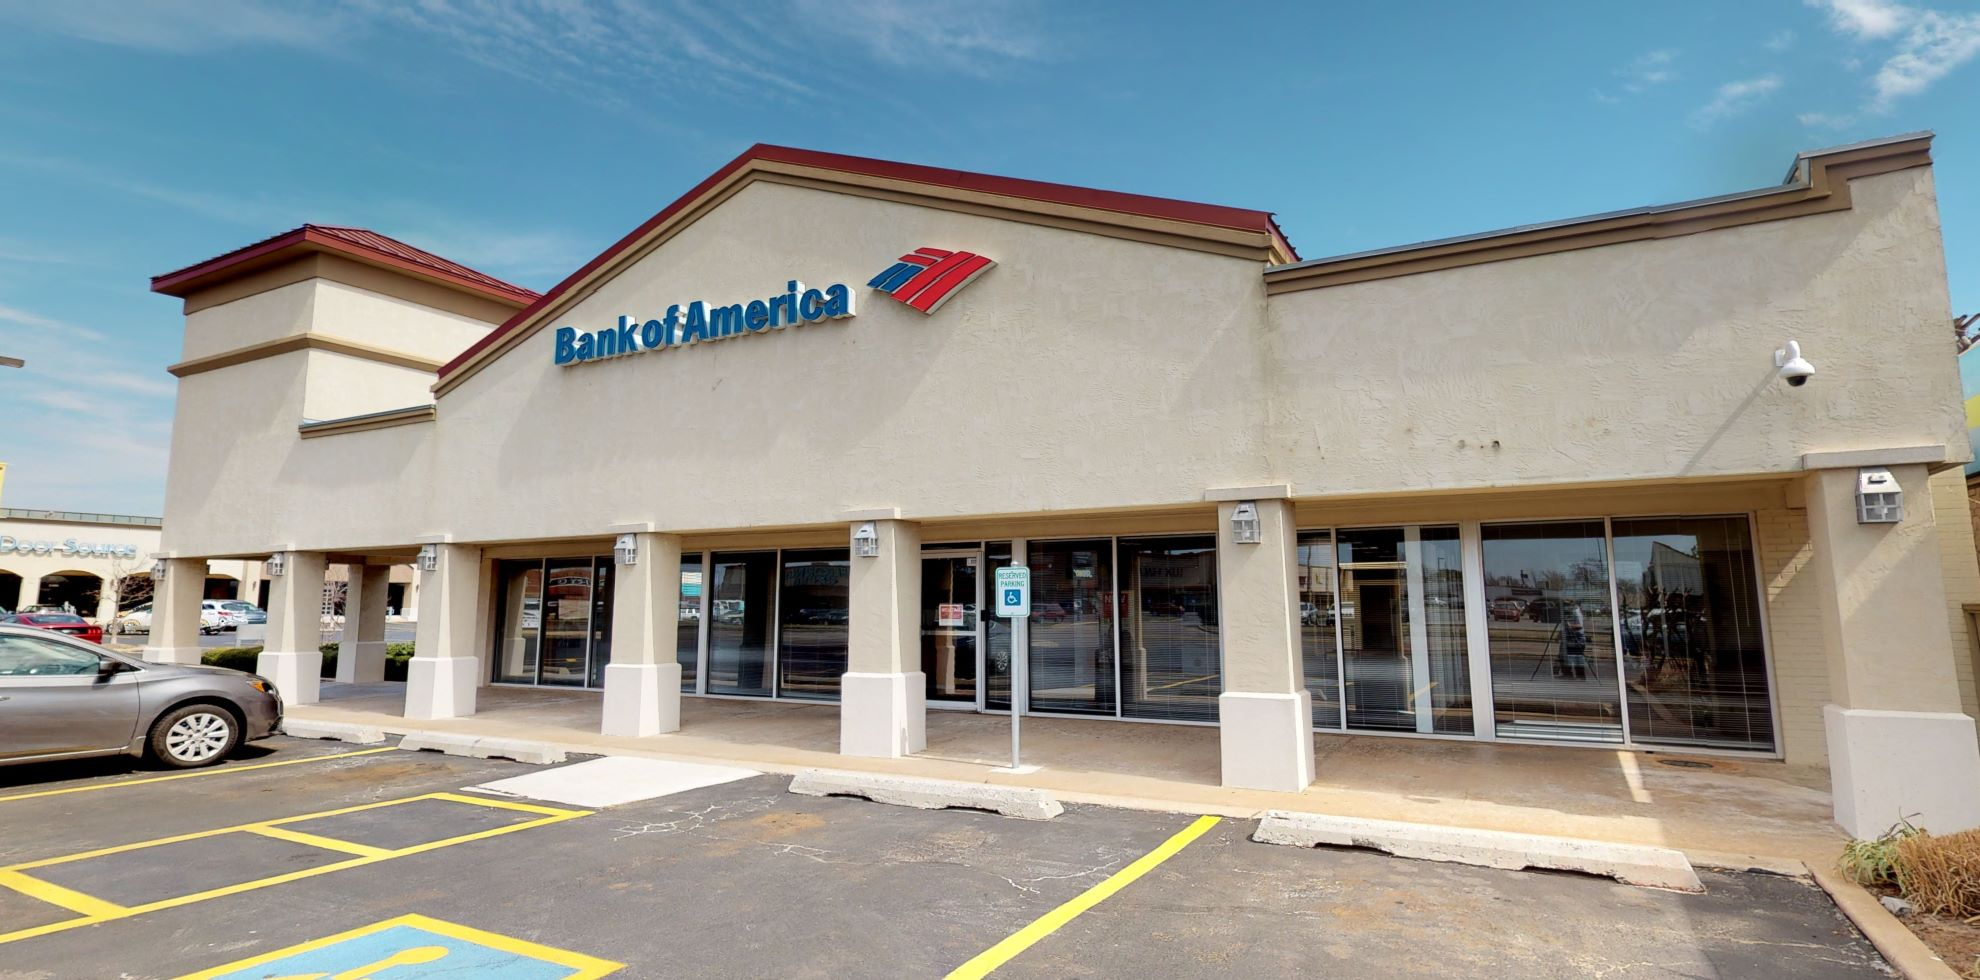 Bank of America financial center with drive-thru ATM   9404 N May Ave, Oklahoma City, OK 73120